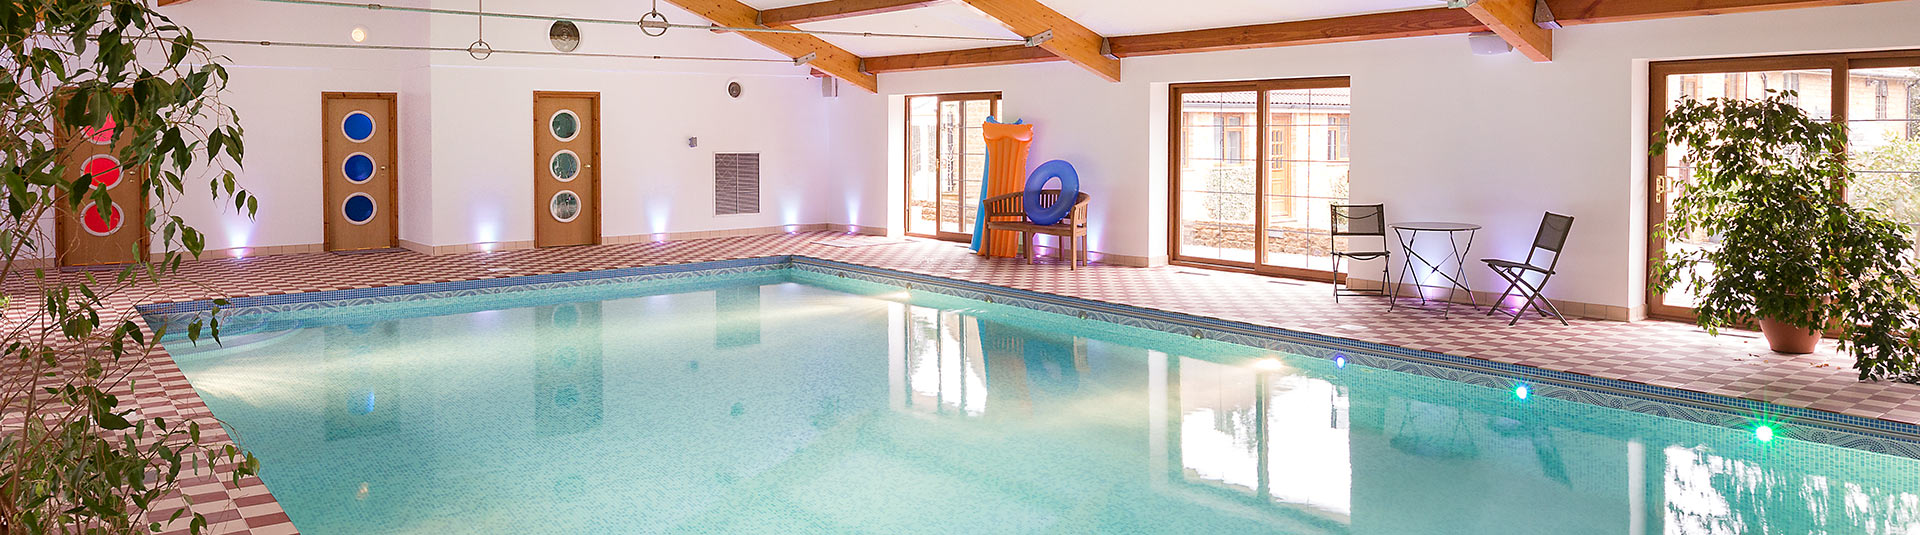 Holiday cottages with indoor pools classic cottages - Holiday lodges with swimming pools ...